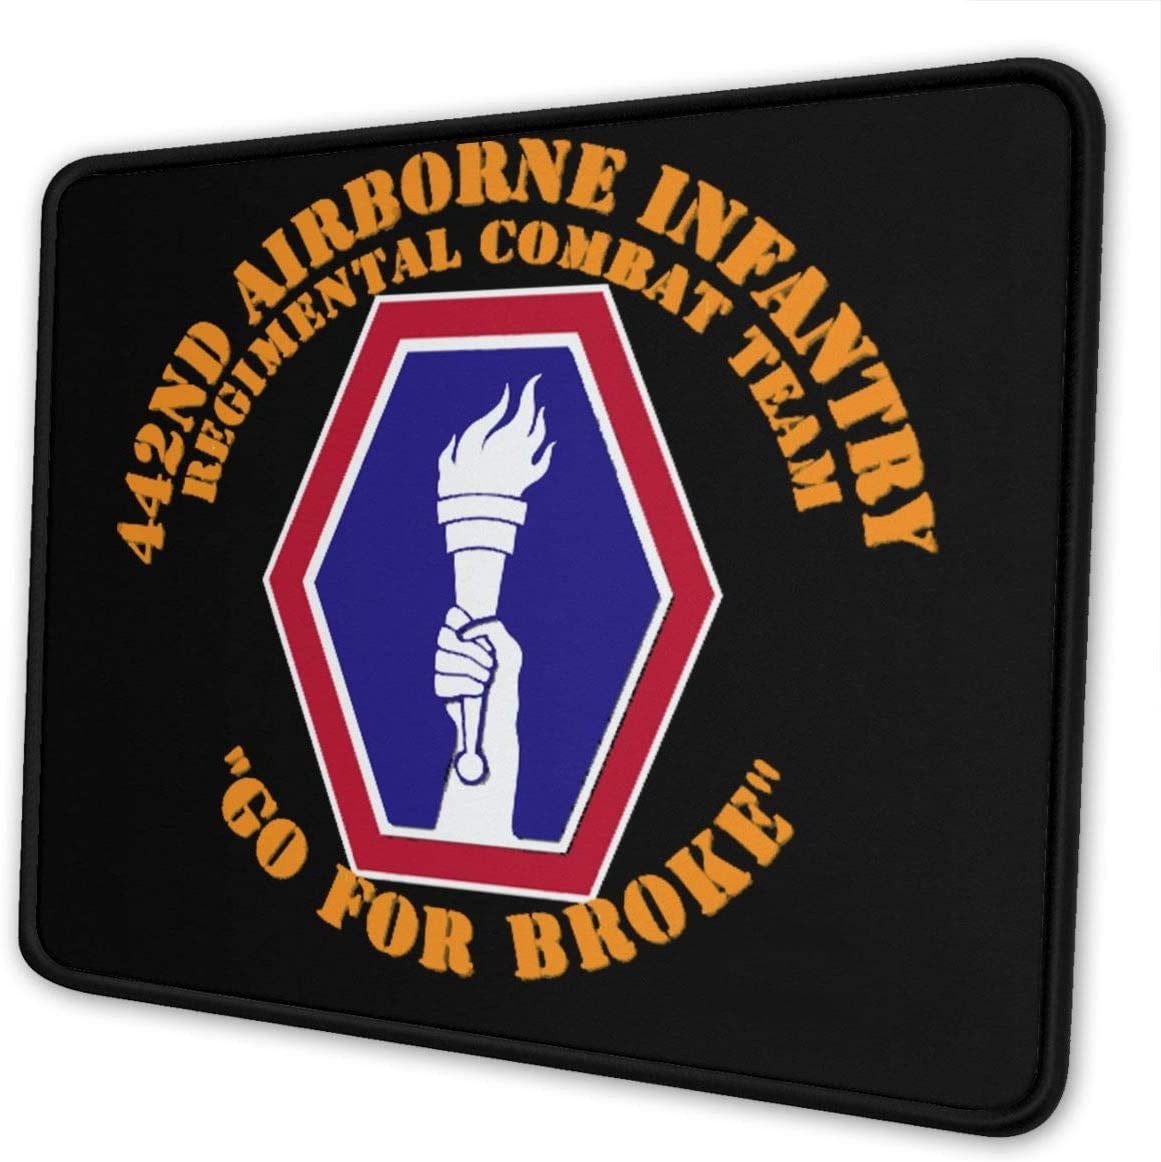 442nd Airborne Infantry Regimental Mouse Pad Non-Slip Rubber Gaming Mouse Pad Rectangle Mouse Pads for Computers Game Office